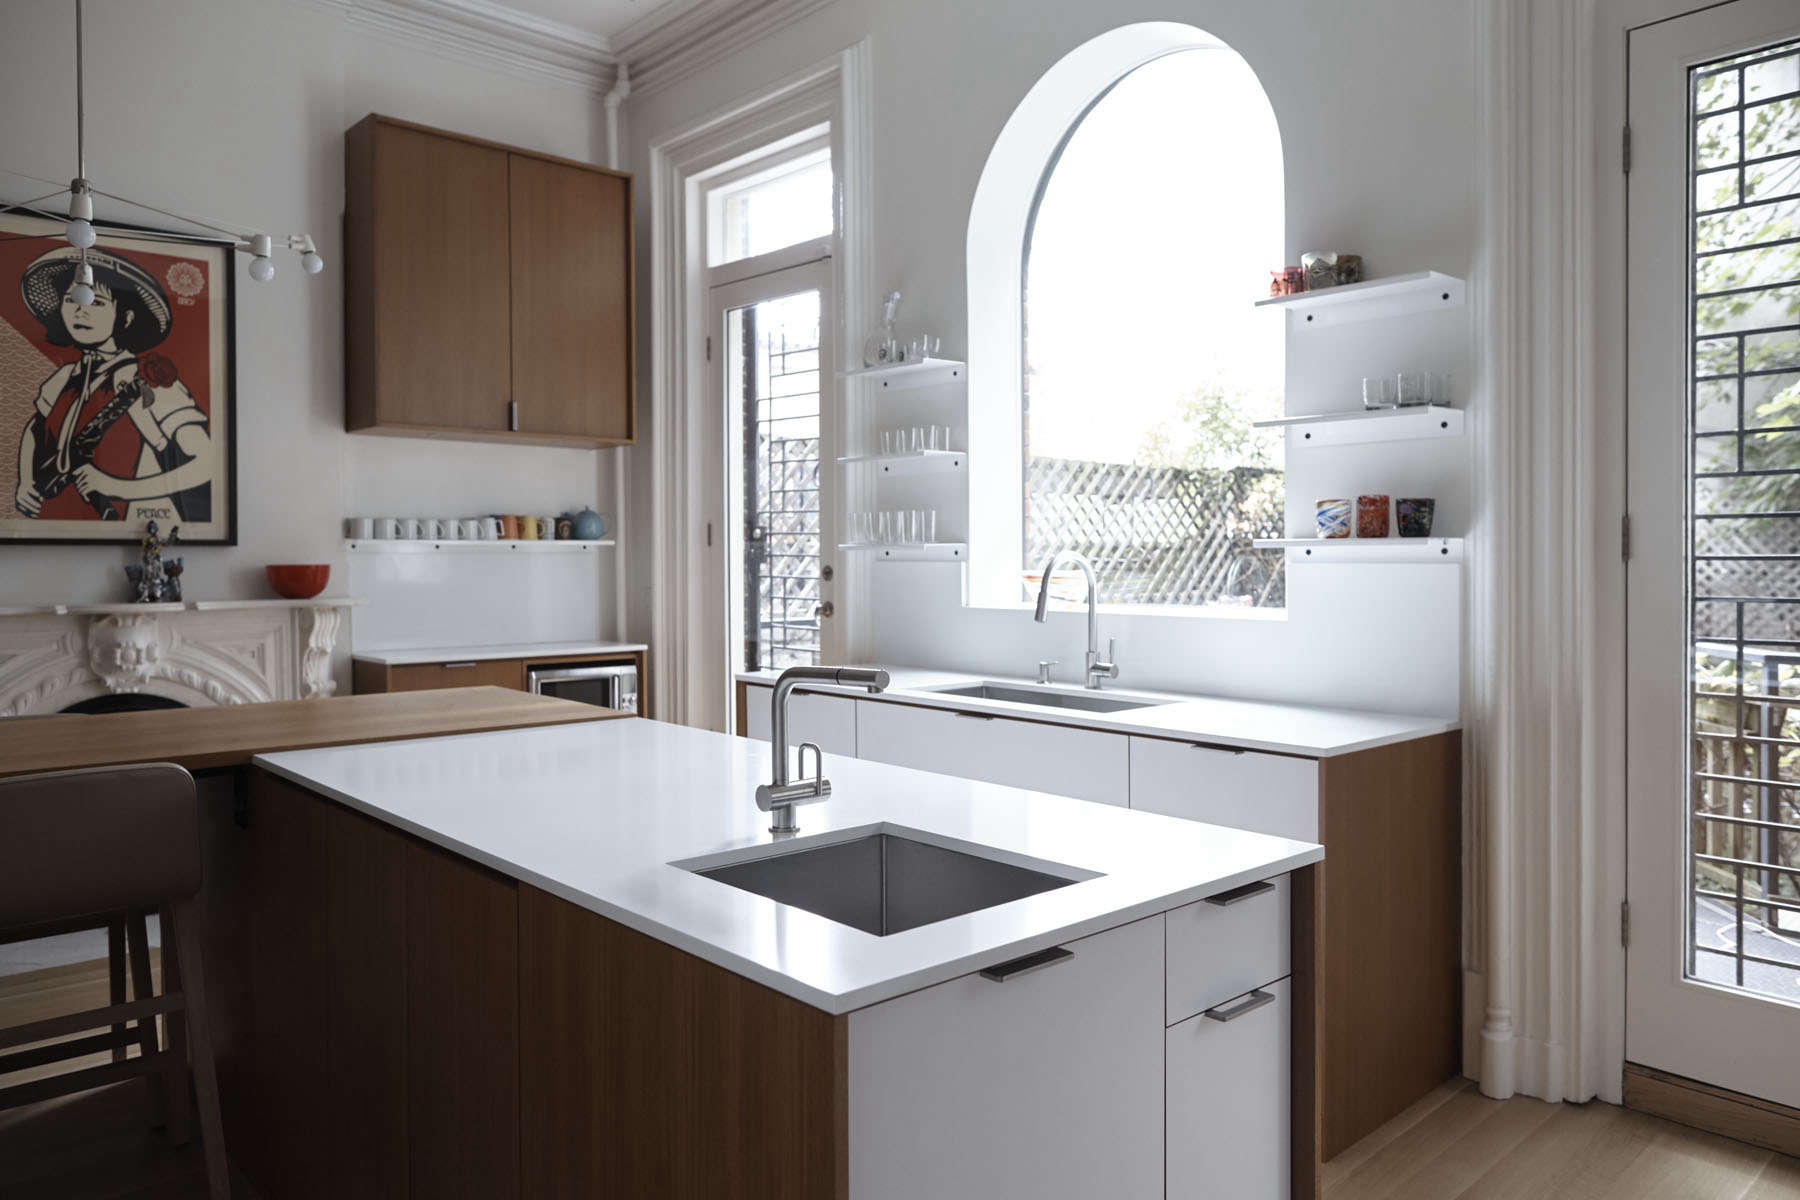 A preserved historic setting for a modern kitchen remodel by architect Shauna McManus and Henrybuilt. The countertops are Caesarstone, the cabinets are teak and white laminate